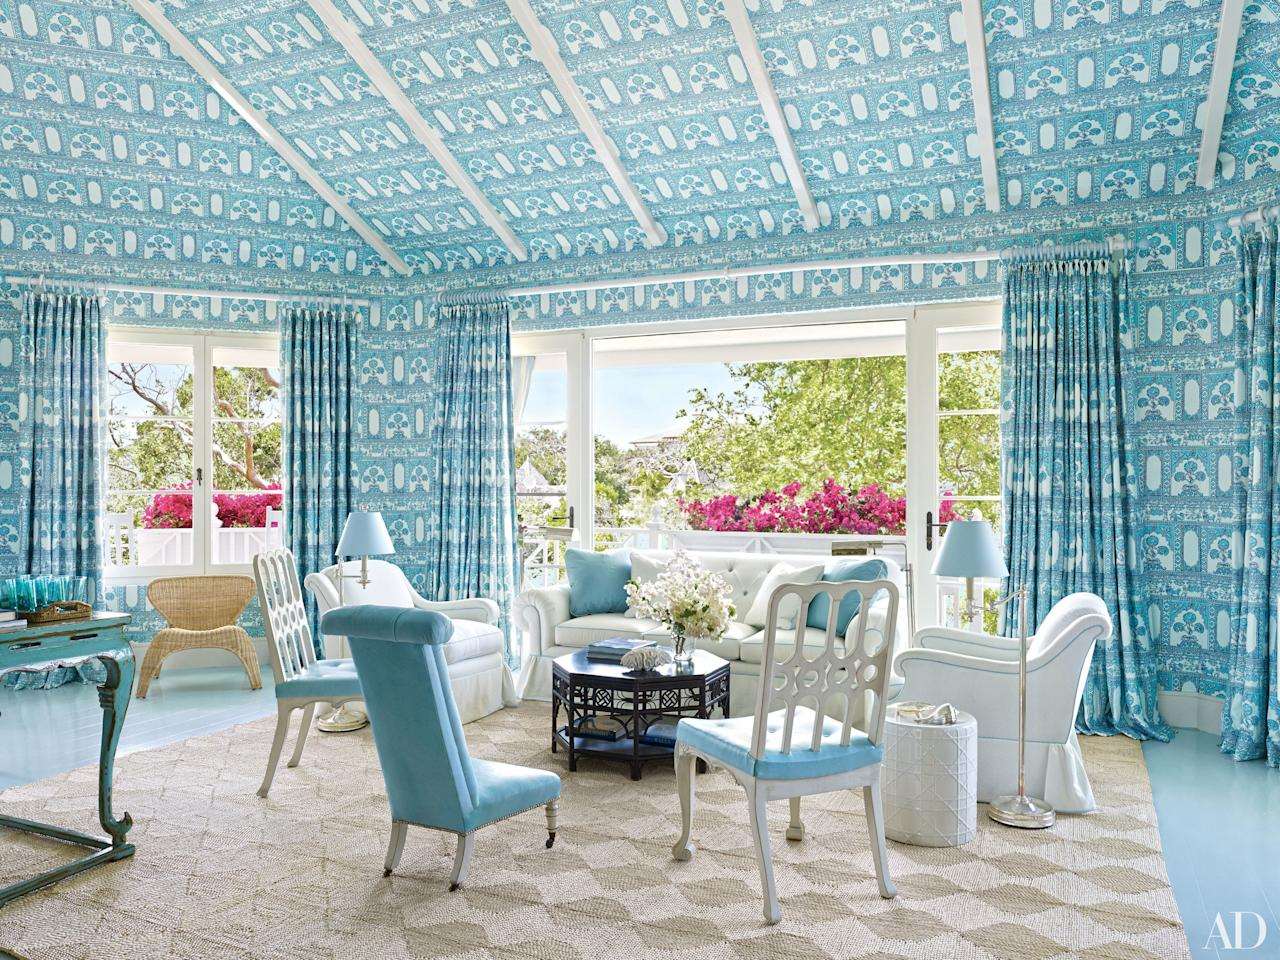 "New York designer Miles Redd recast the interiors of a Texas family's <a rel=""nofollow"" href=""http://www.architecturaldigest.com/story/miles-redd-bahamas-beach-vacation-home-article?mbid=synd_yahoo_rss"">vacation house at the Lyford Cay club in the Bahamas</a>. The living room walls and ceiling are covered in a China Seas fabric, with curtains to match. The sofa is by Oscar de la Renta Home for Century Furniture, and the antique slipper chair is clad in a blue Global Leathers hide."